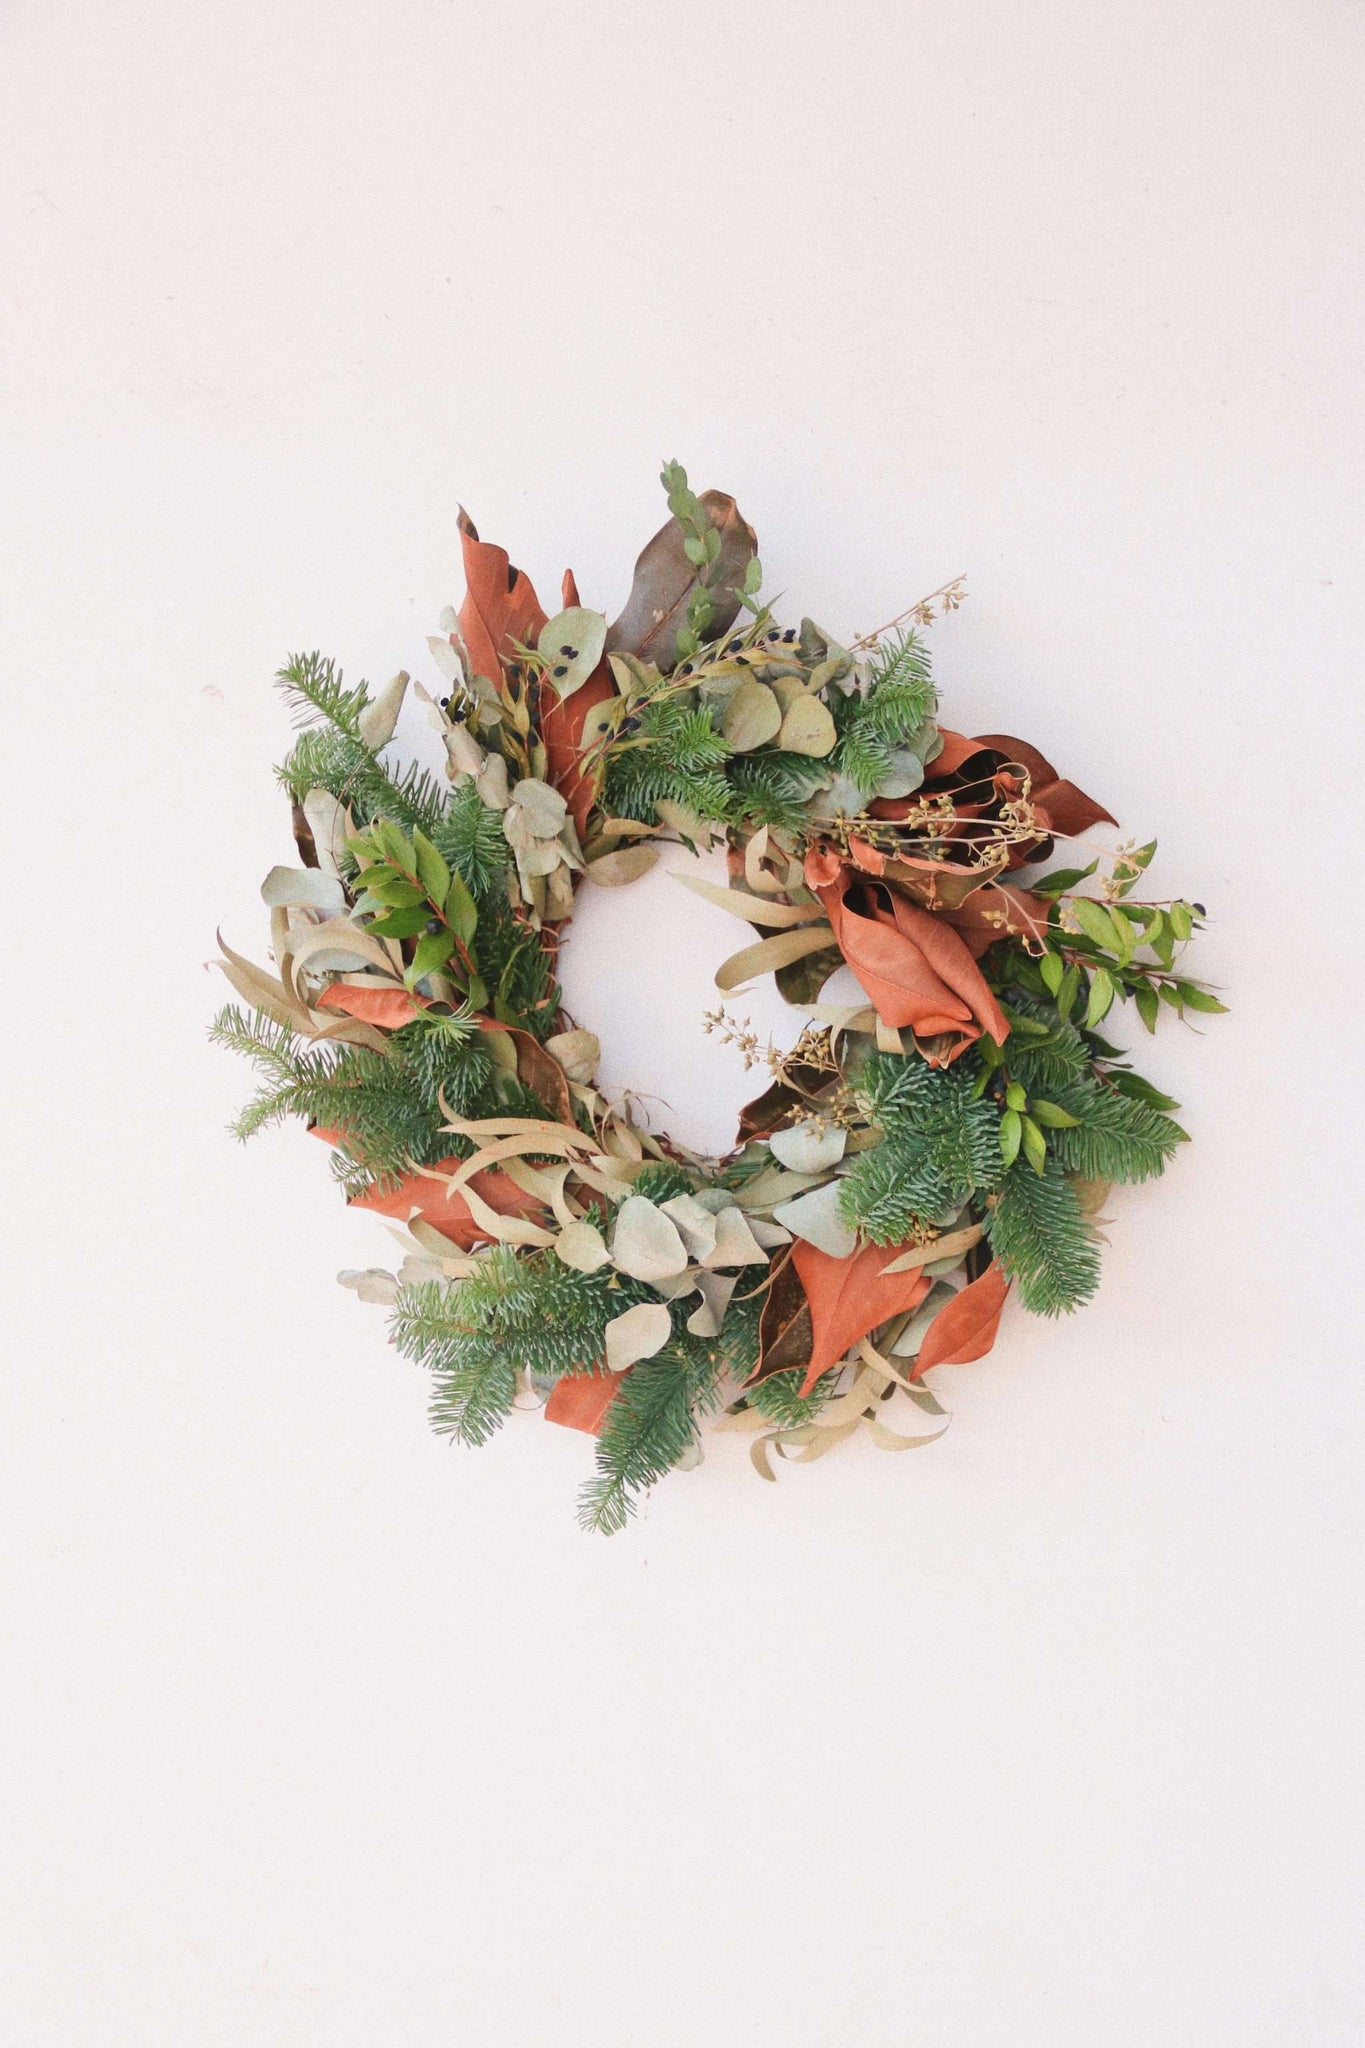 Christmas'19 | Fresh Magnolia & Foliage Christmas Wreath